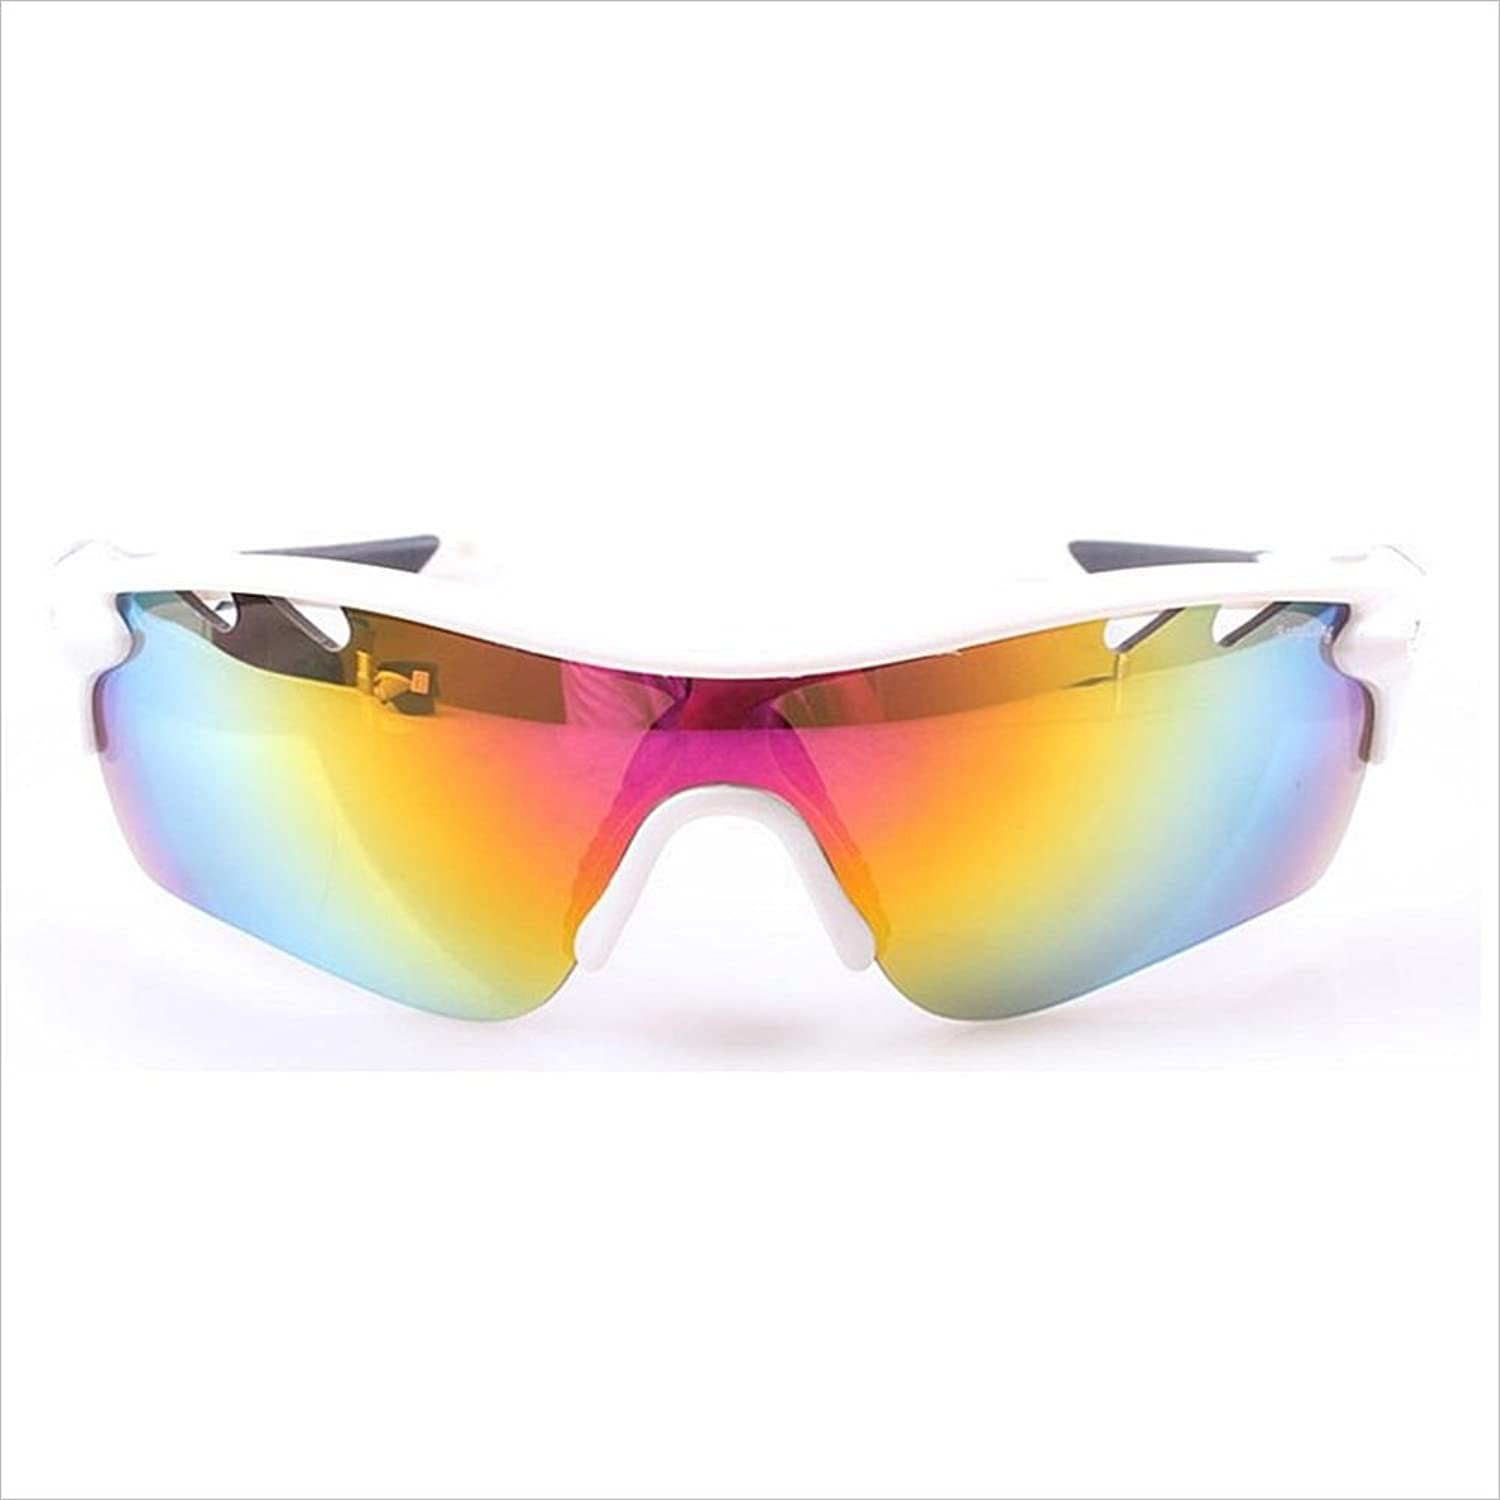 Sports sunglasses Polarized Outdoor Sports Sunglasses PC 3Pcs Interchangeable Lens Myopia Beach Weekend Vacation Relax Men's And Women's General Outdoor Fishing Driving Cycling Selfdriving Tour Cycli